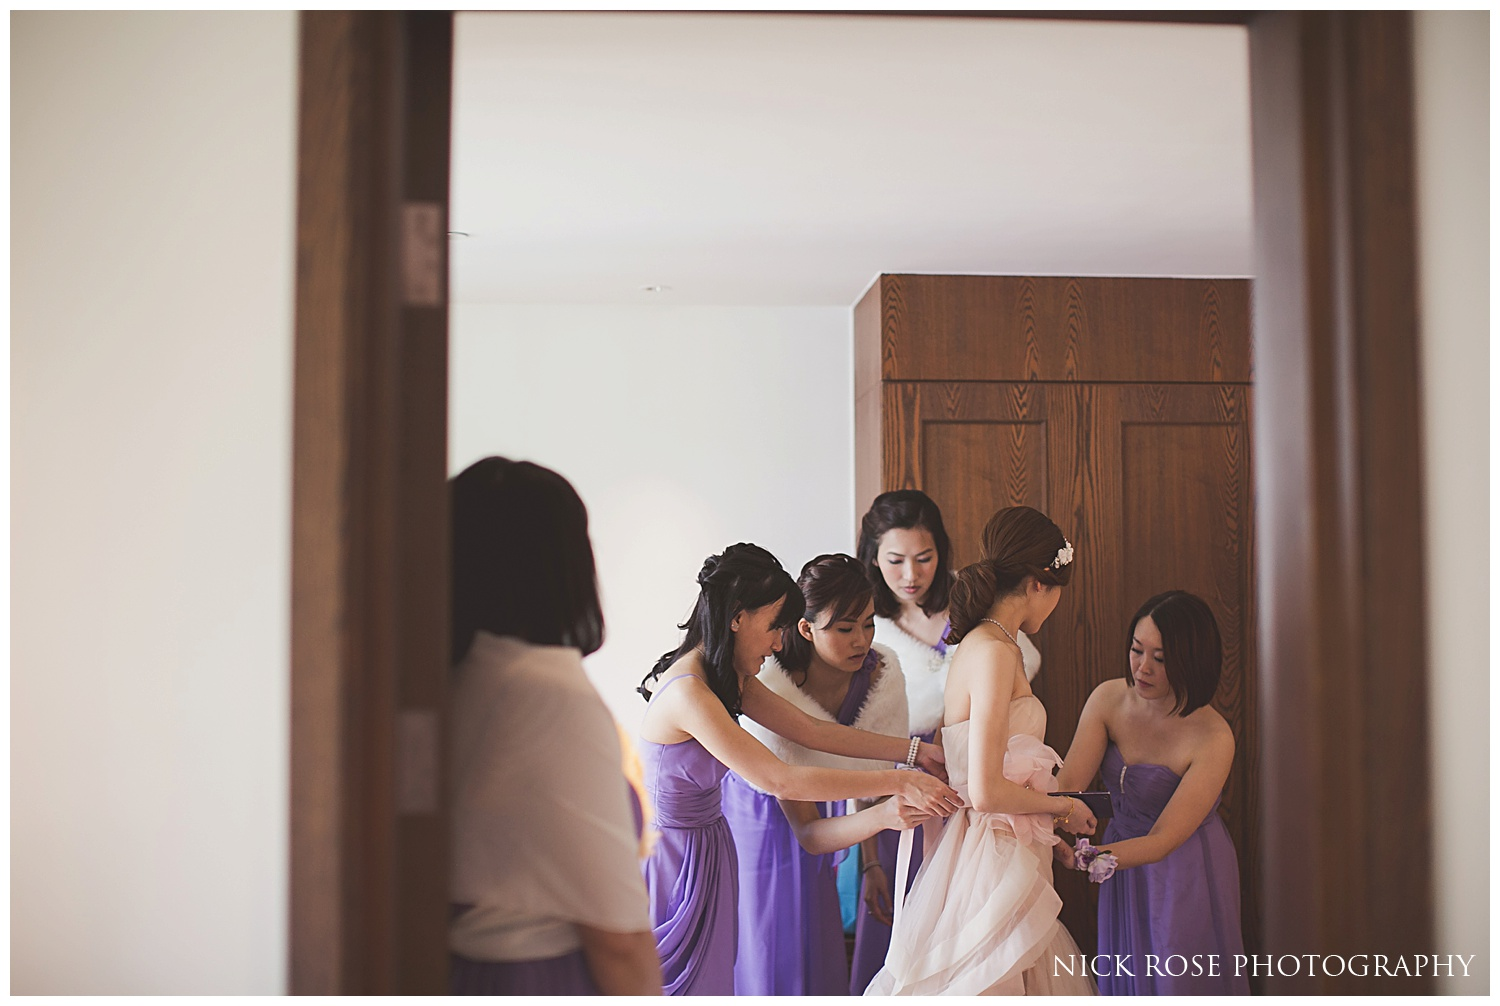 Jockey Club Wedding Photographer Hong Kong